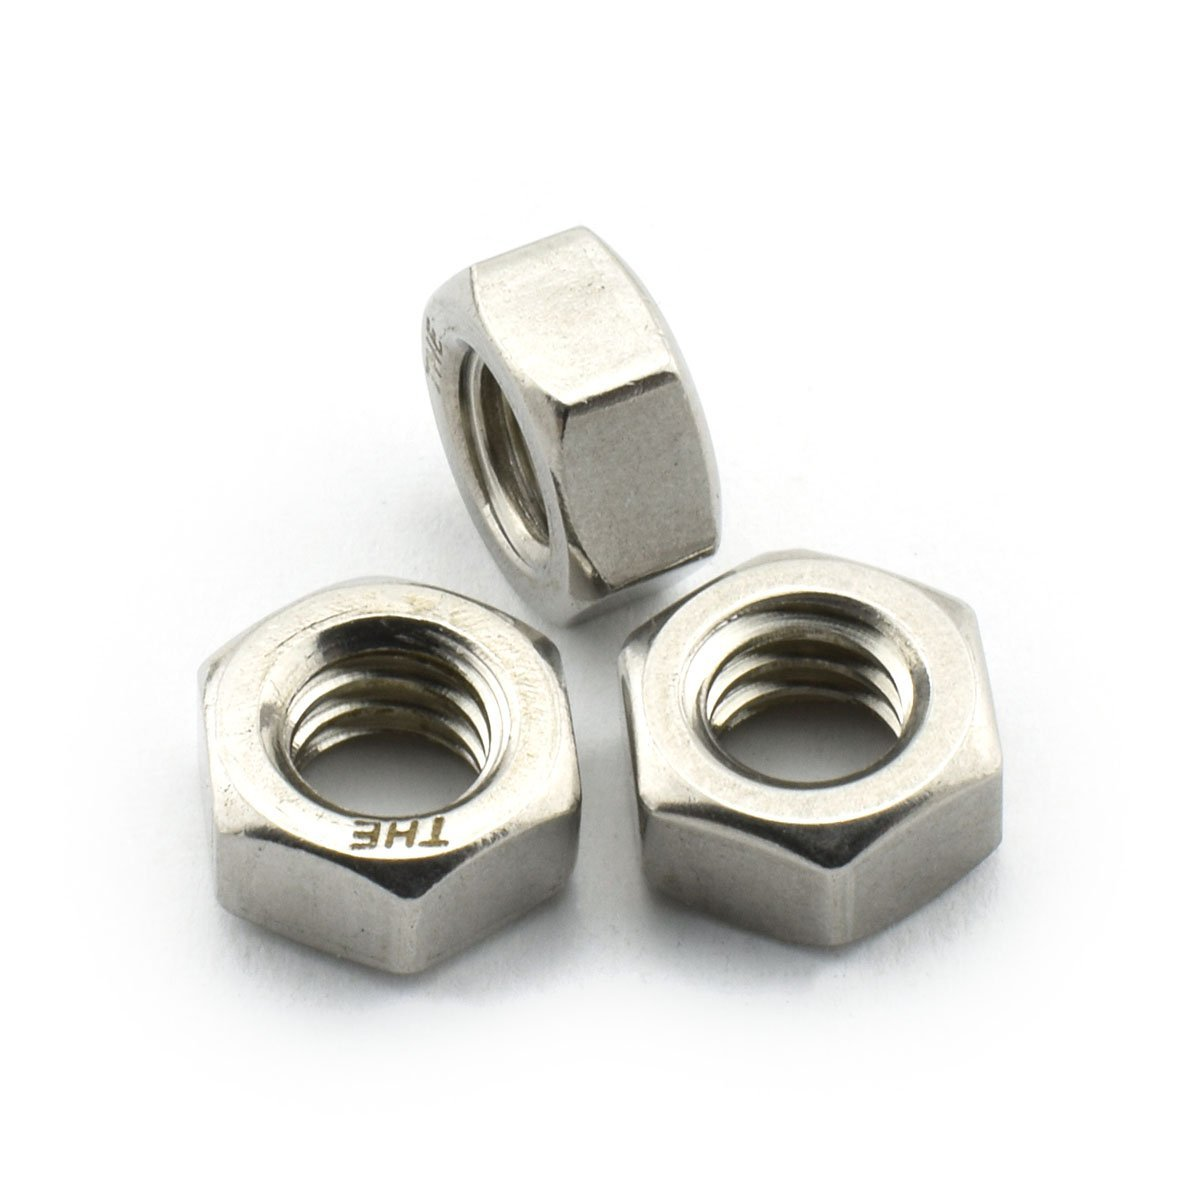 30pcs 1/4-20 Hex Screw Nuts 304 Stainless Steel Hexagon Lock Nuts for Screws Bolts